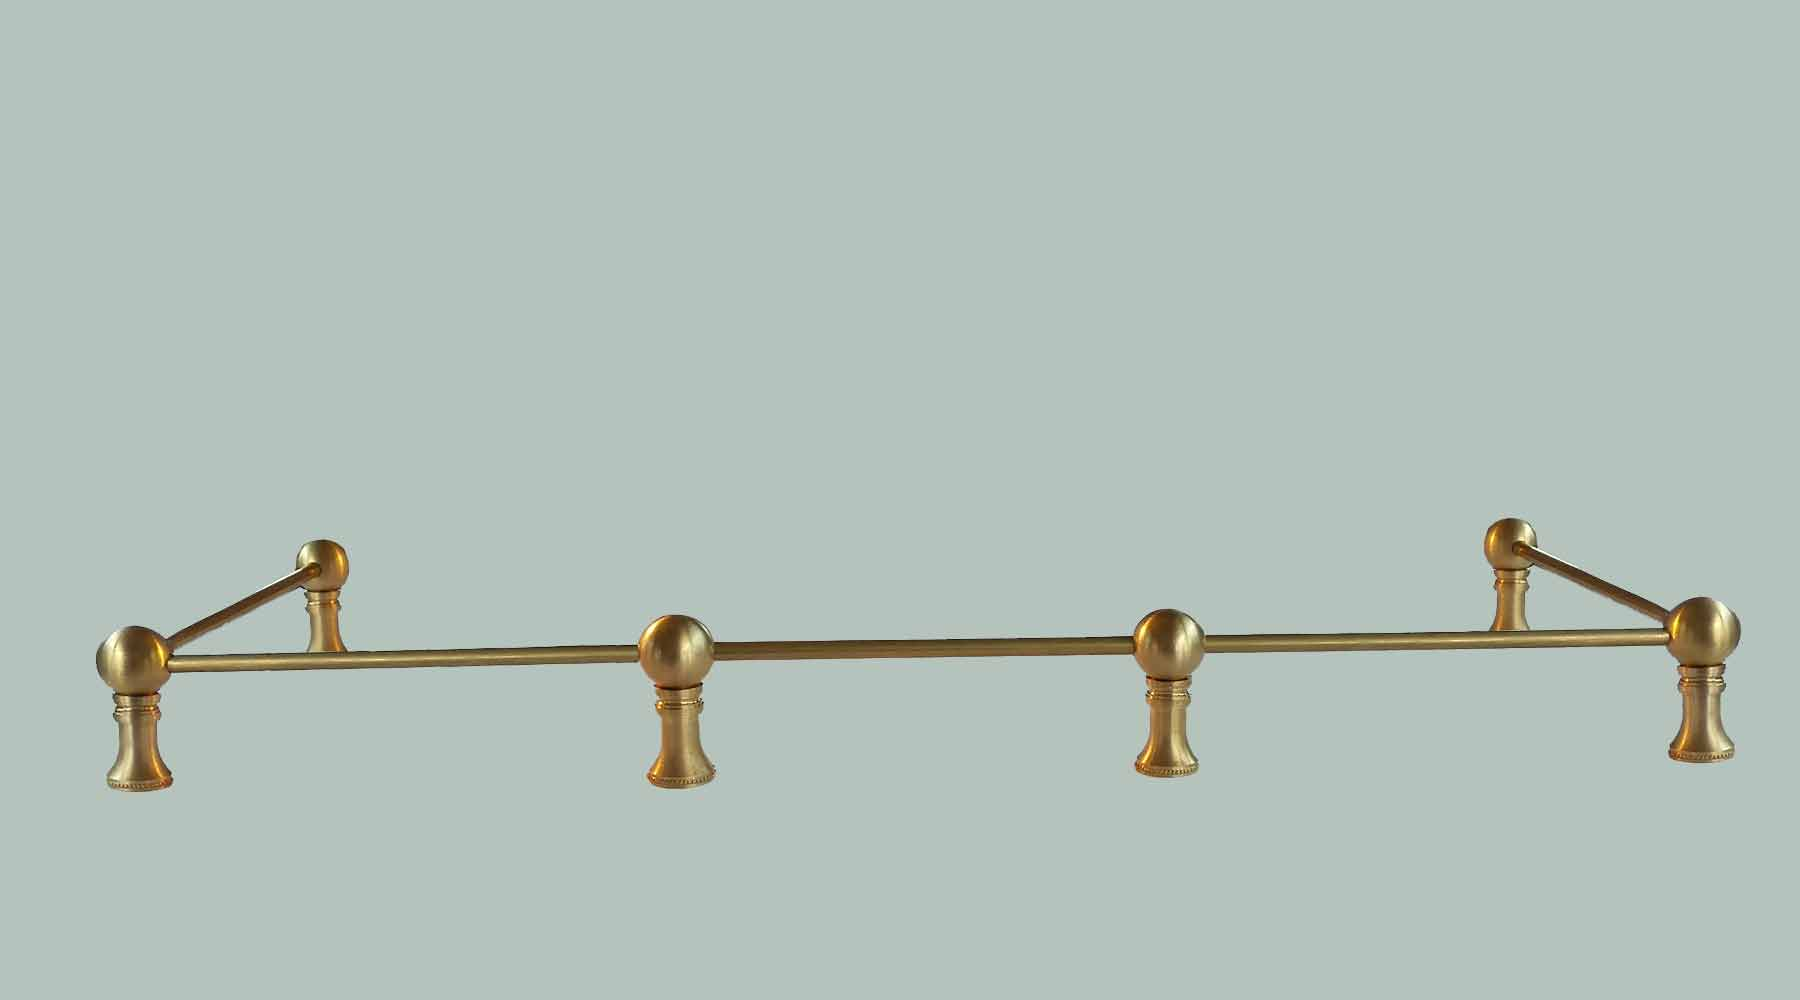 Brass Gallery Rail is a great option for kitchens, keeping items in place